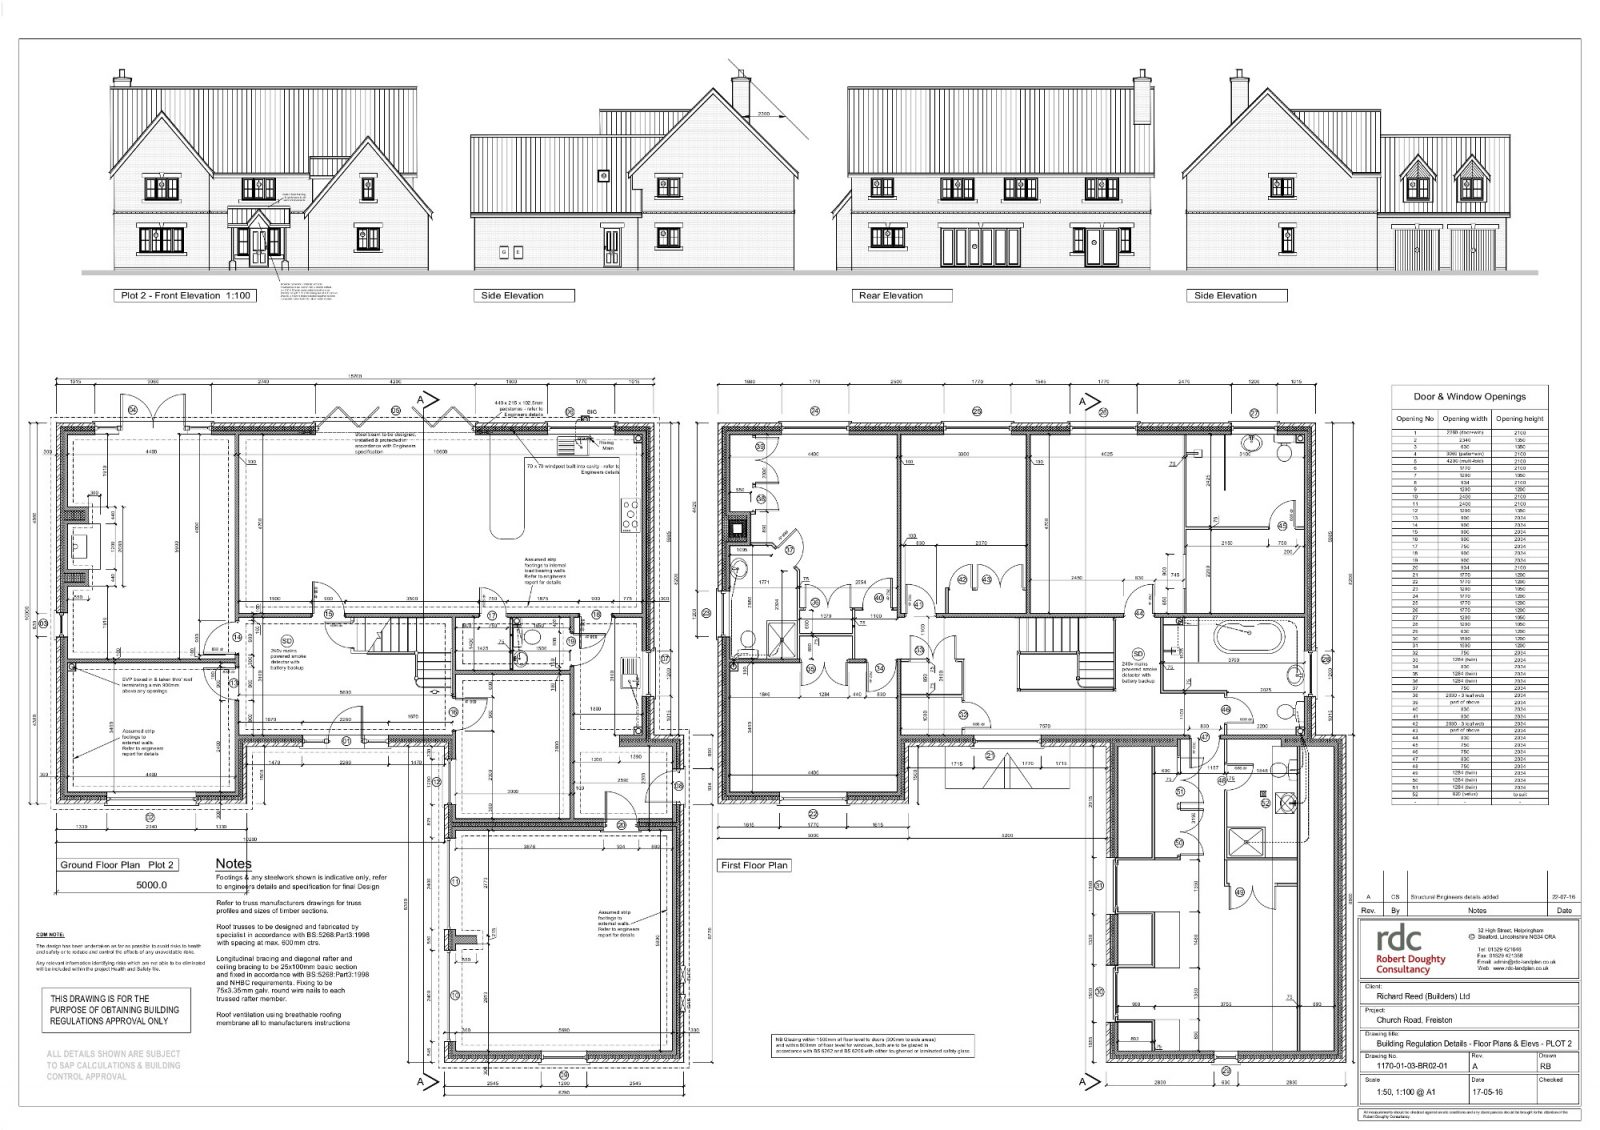 plot 2 floor plans and elavations